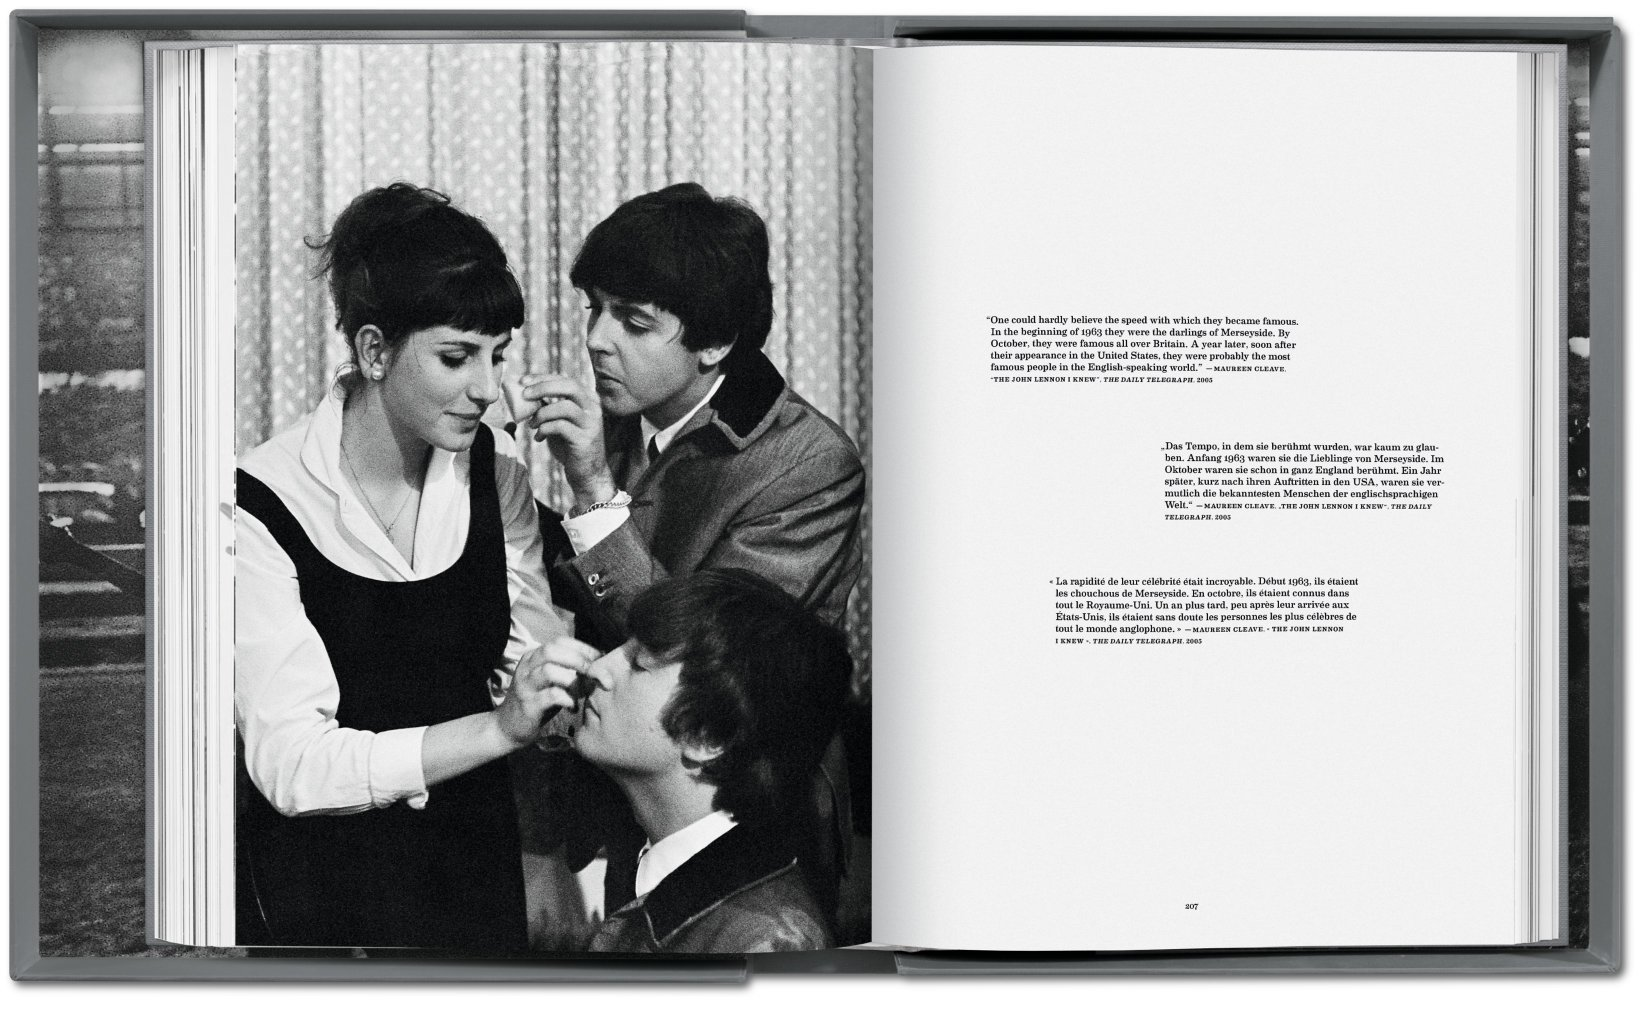 Libros Beatles Harry Benson The Beatles Limited Edition Libros Taschen